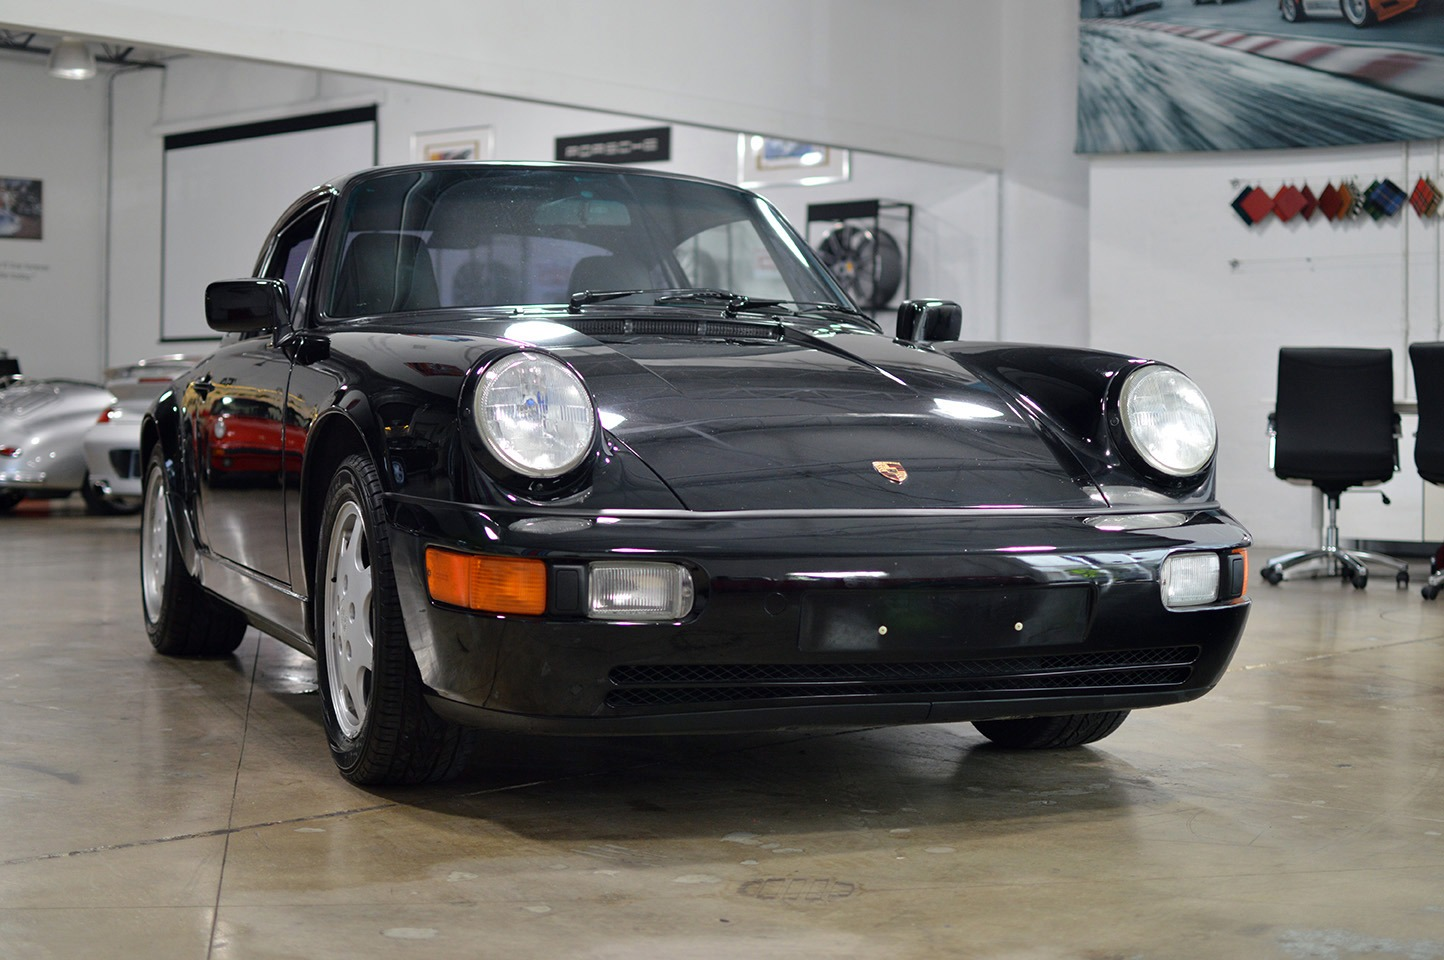 Used 1991 Porsche 911 Carrera 4 964 C4